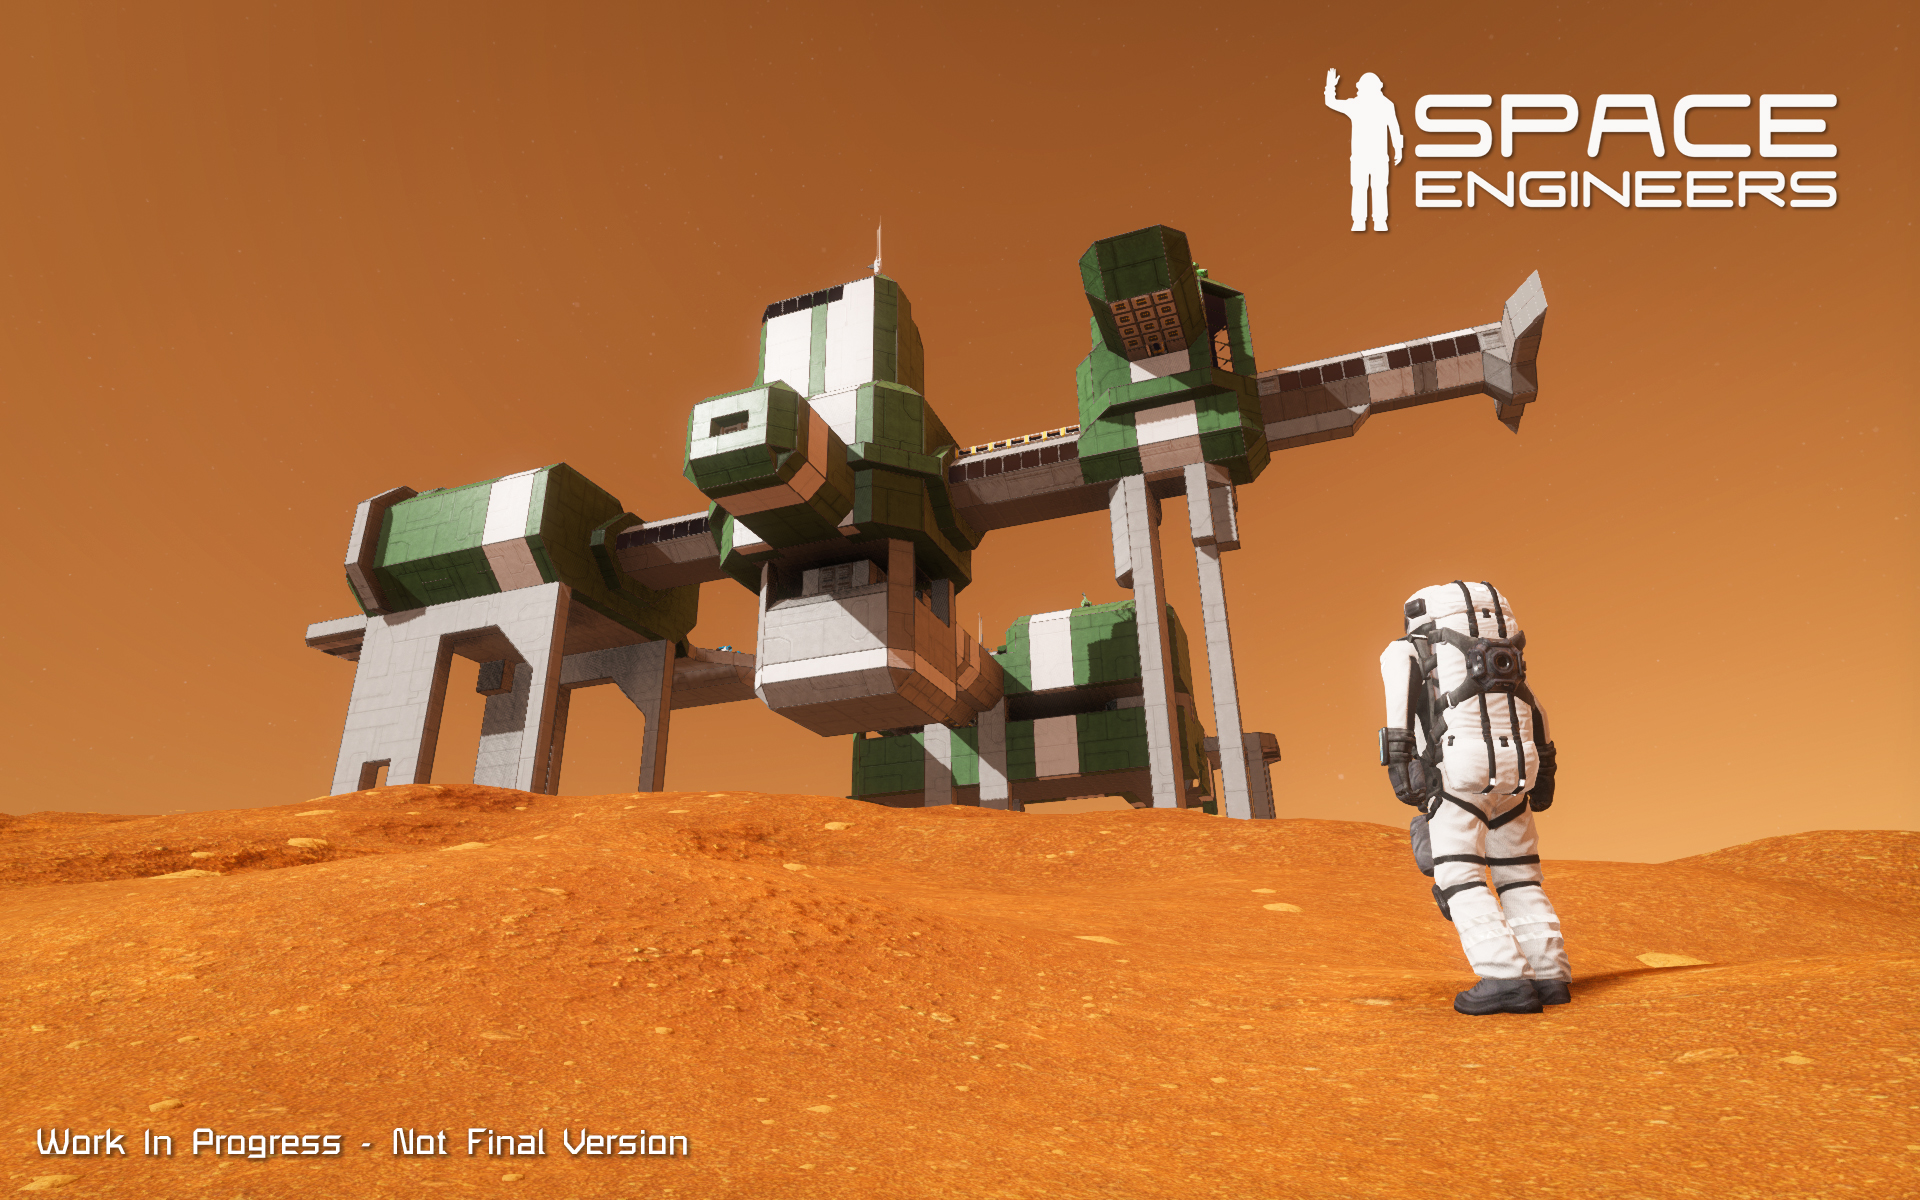 space engineers mars rover - photo #21